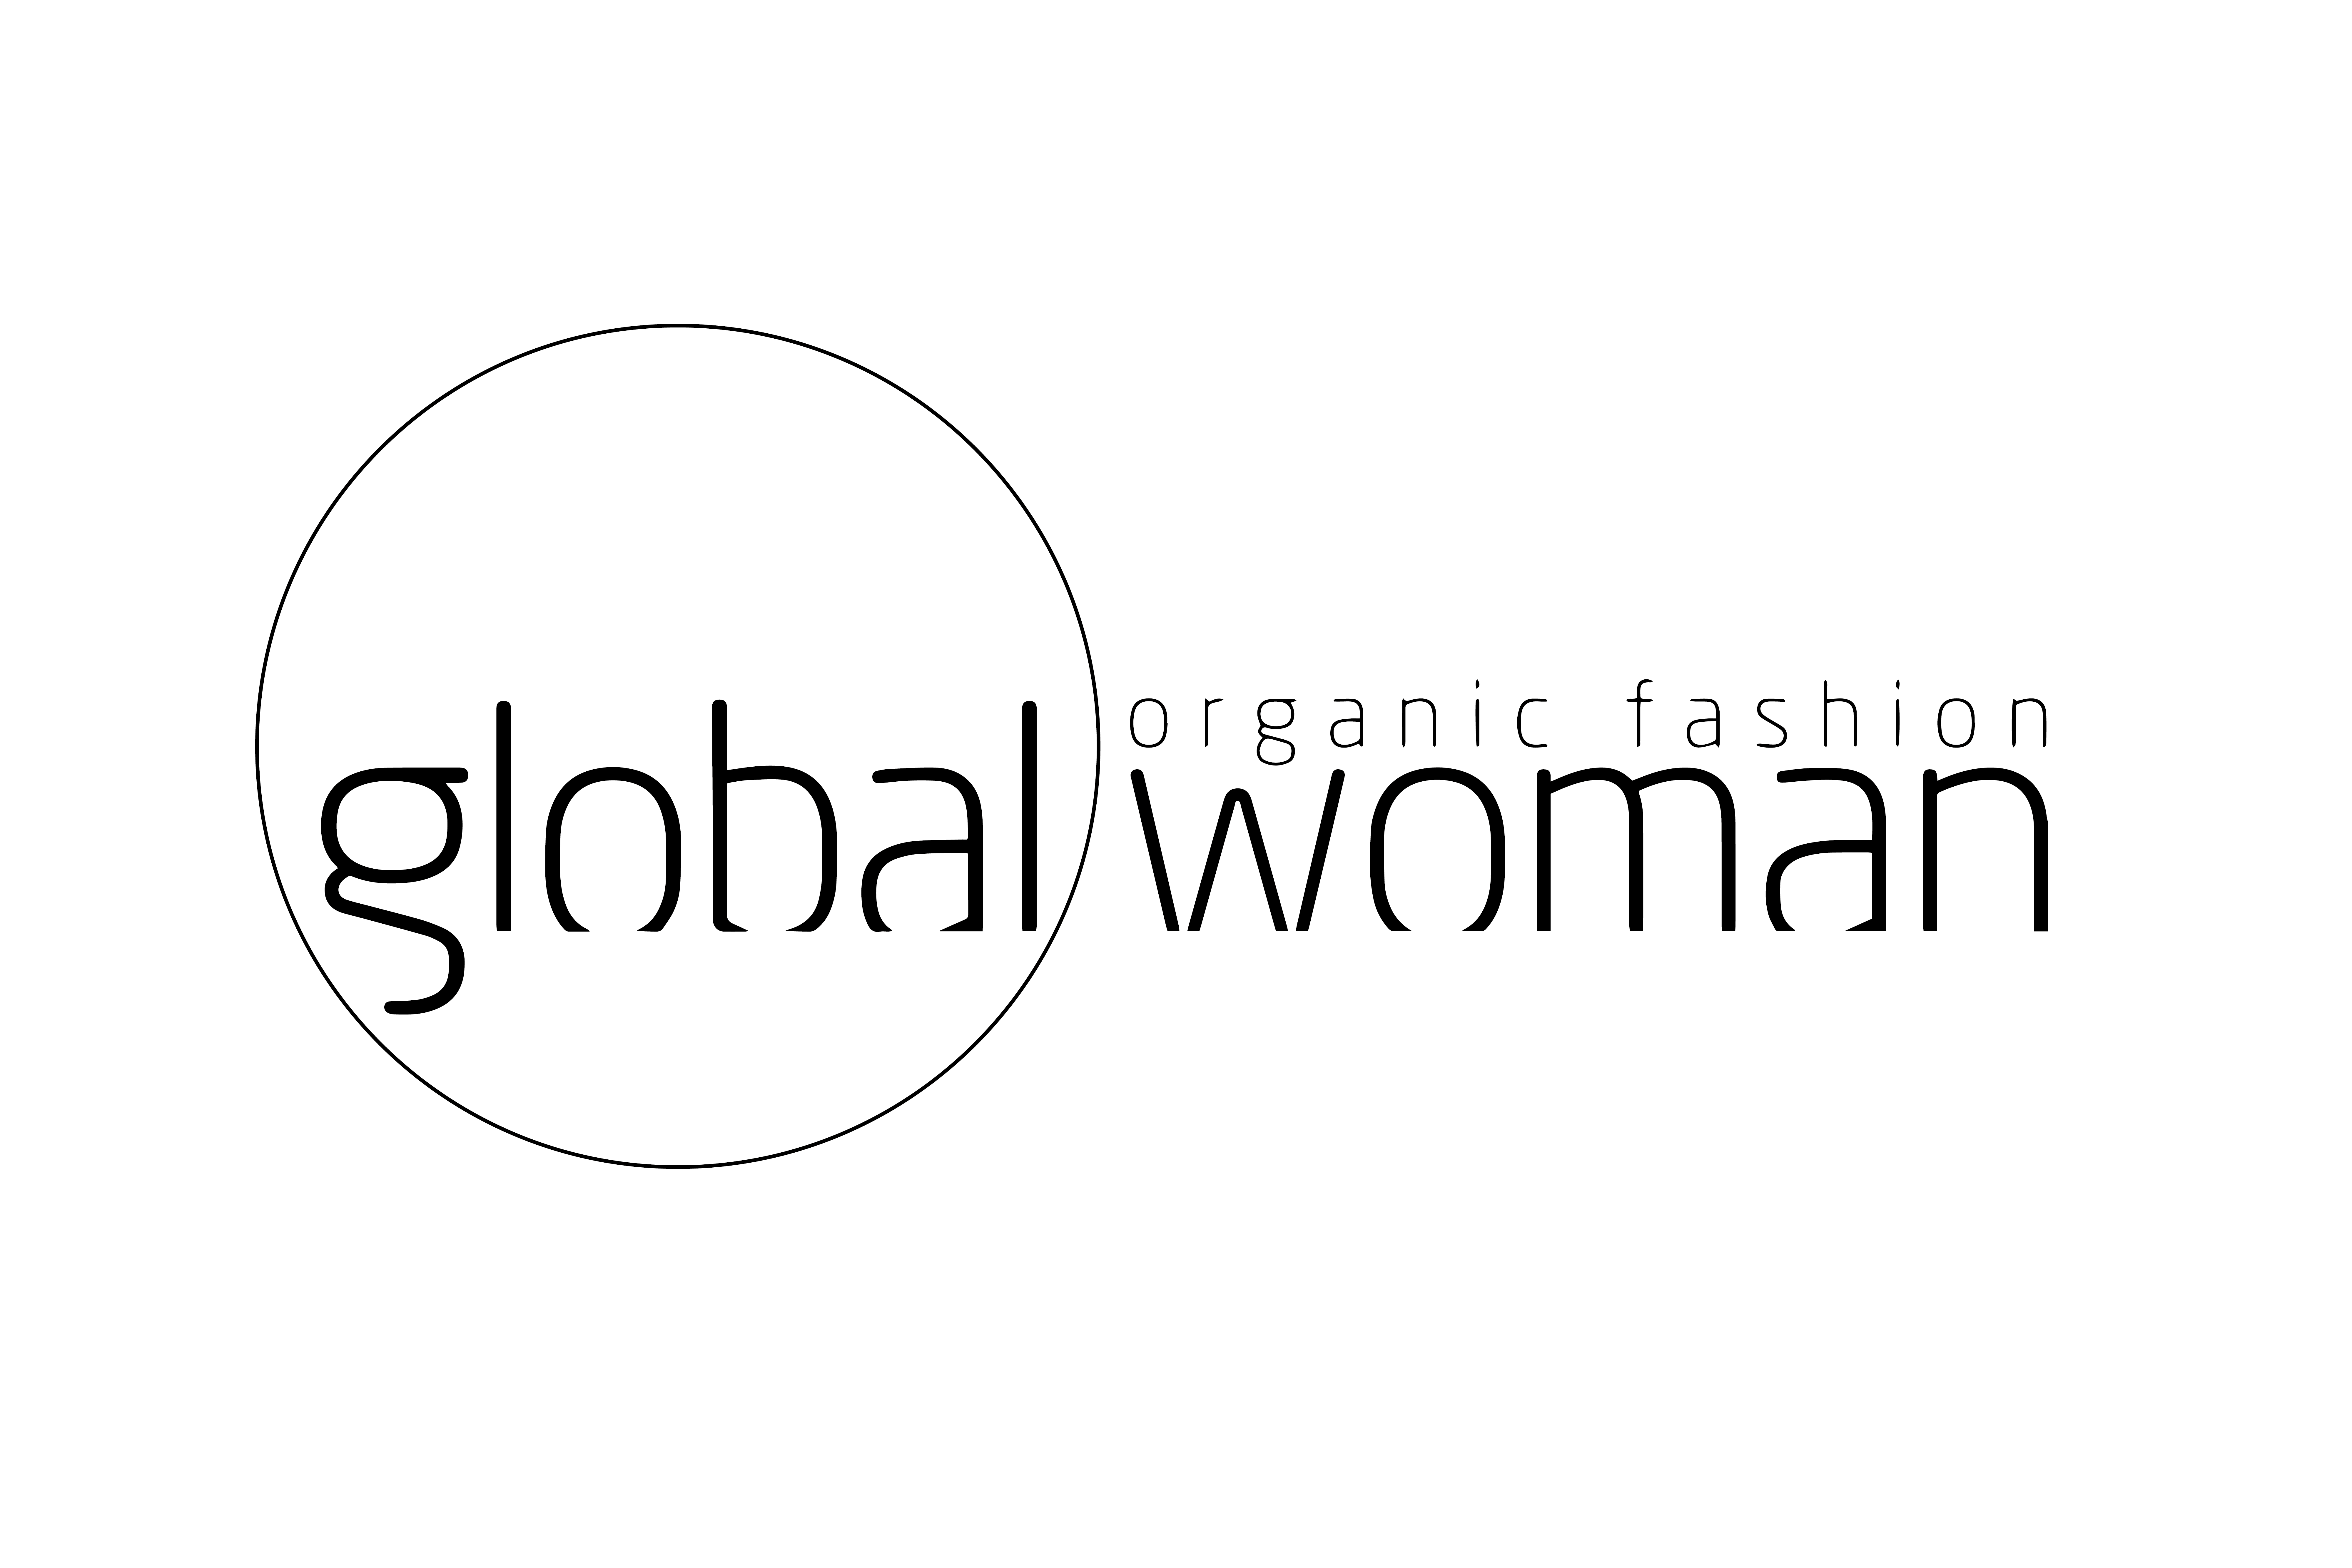 Global woman rond